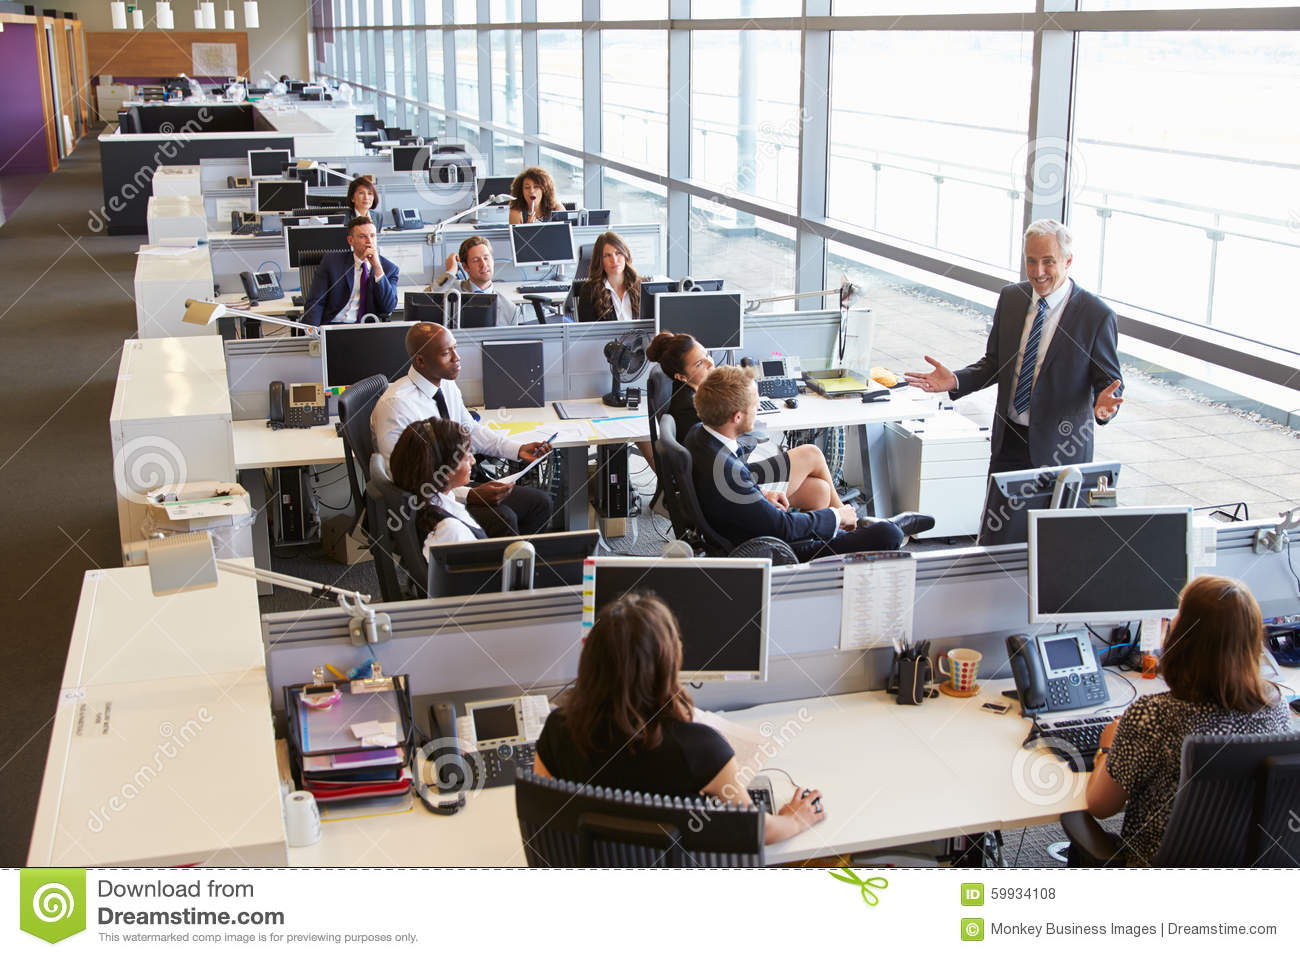 Senior male manager addressing workers in open plan office